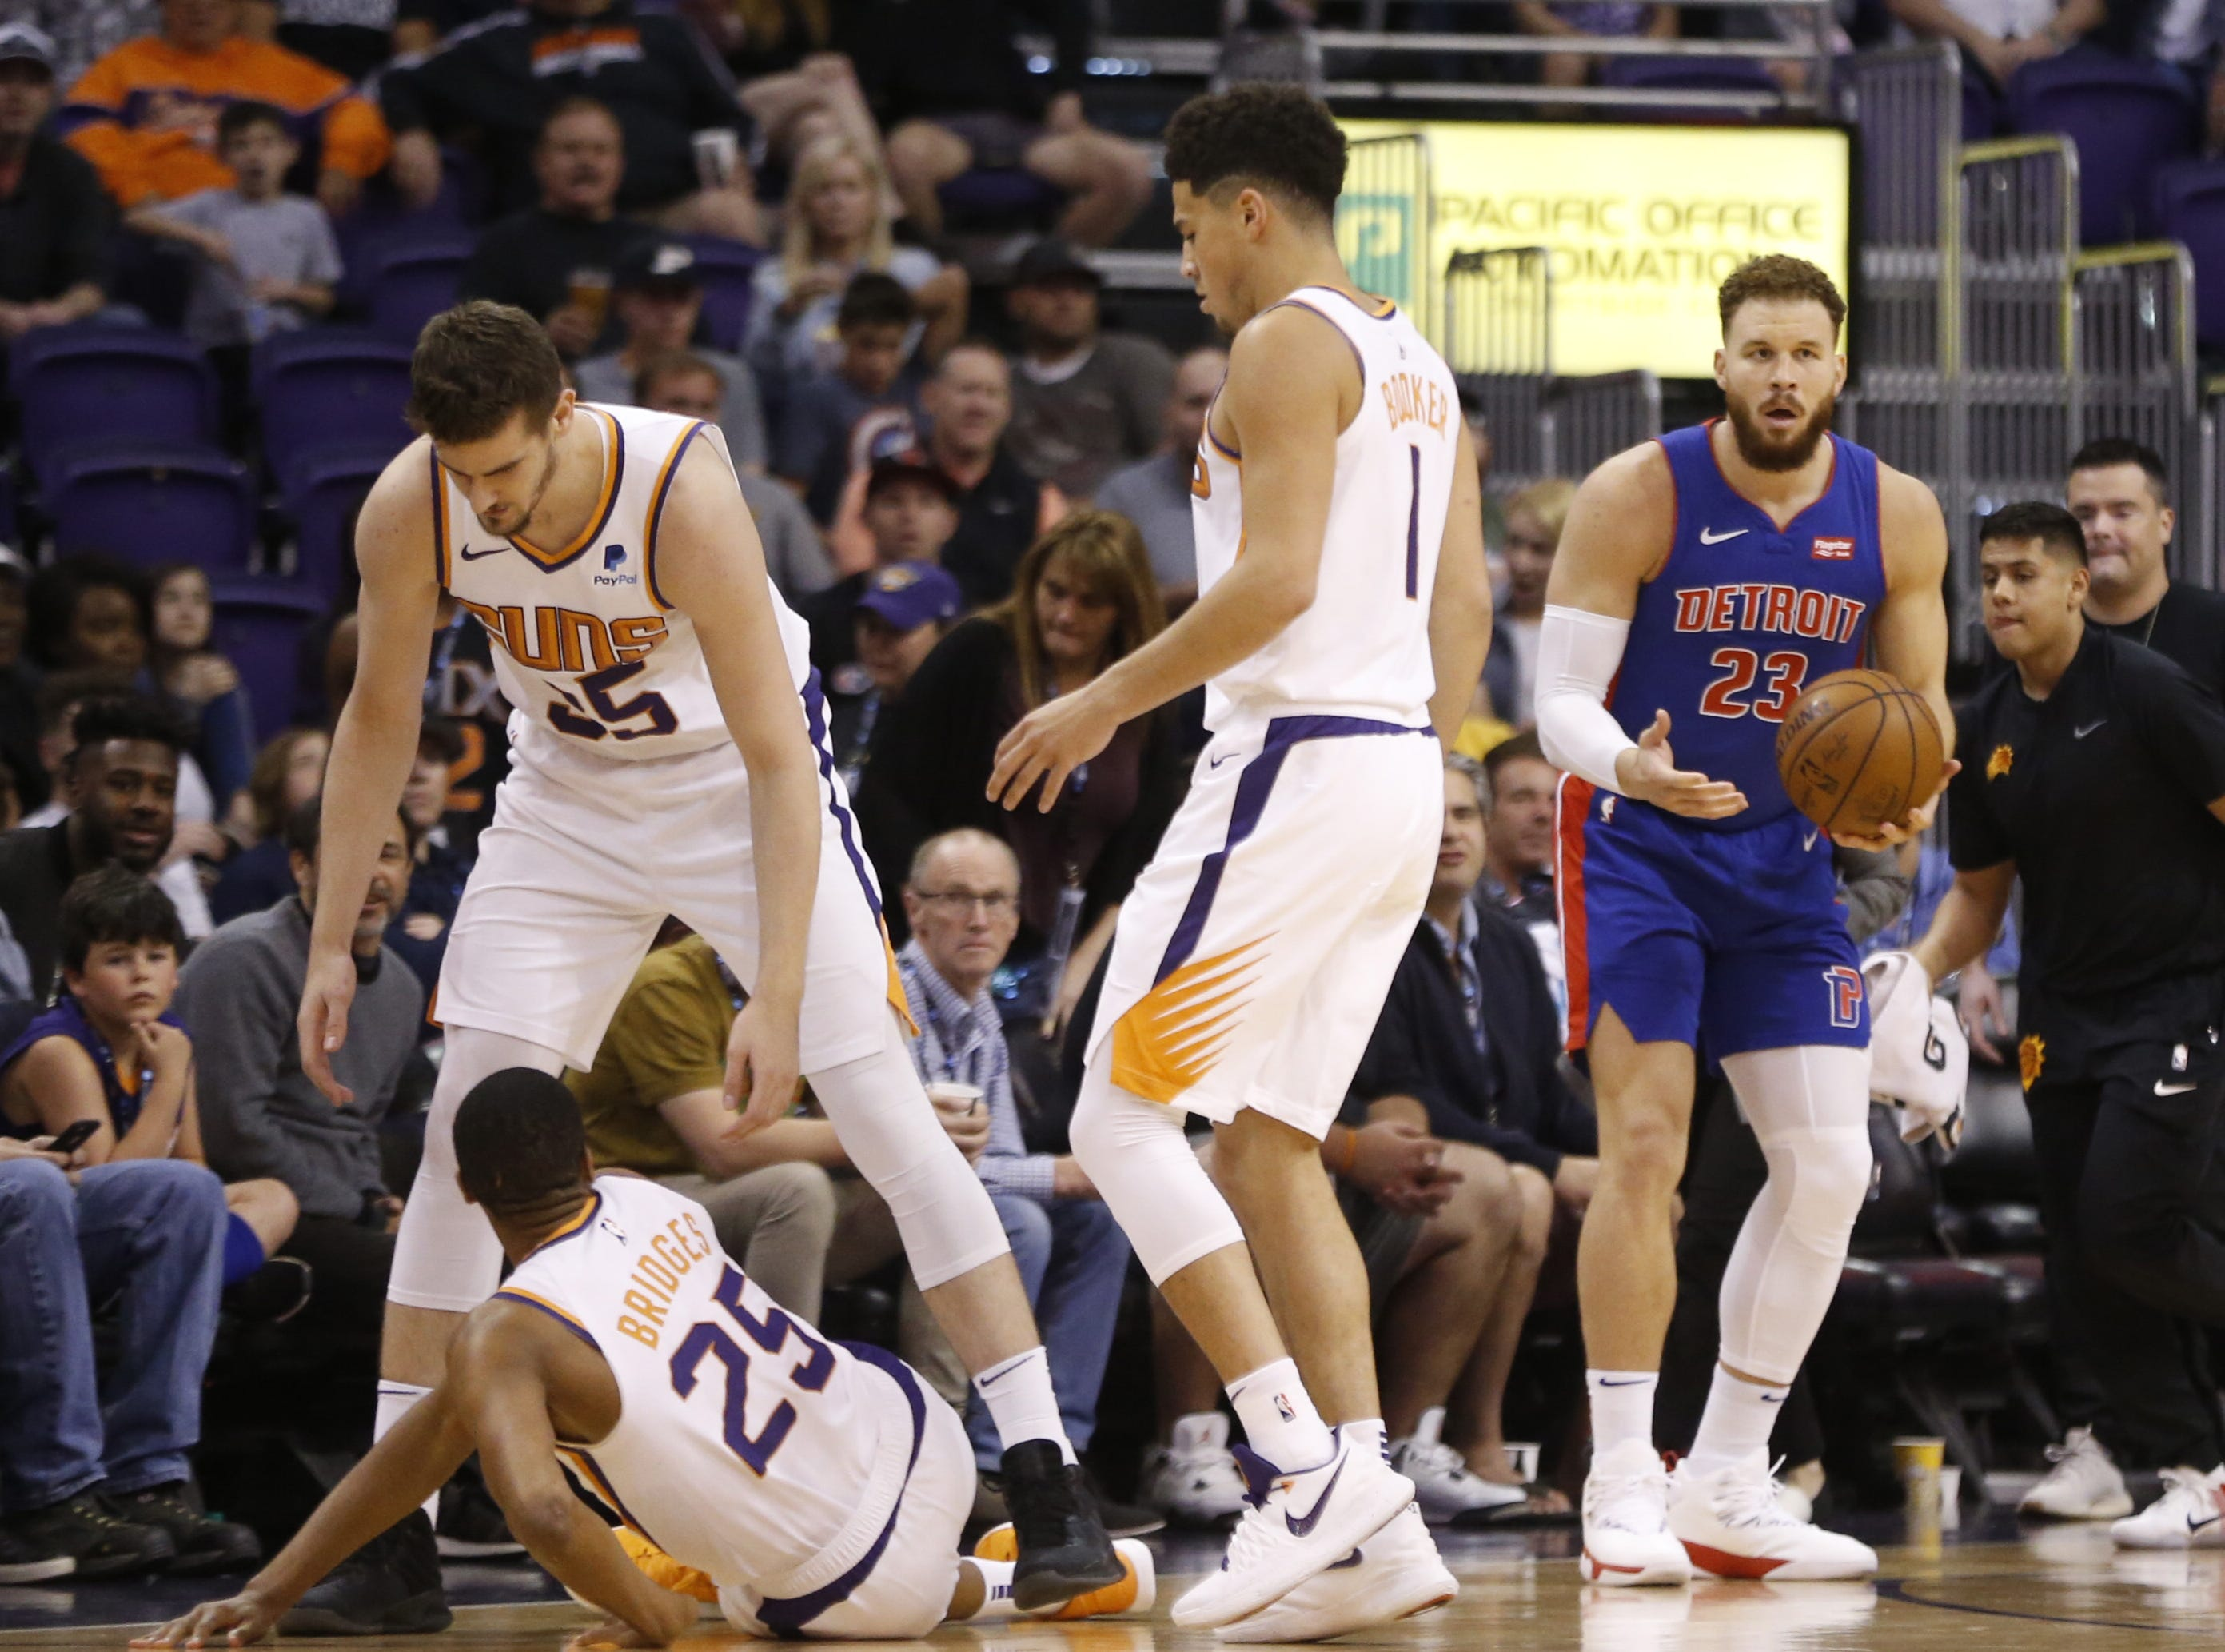 Detroit Pistons forward Blake Griffin (23) reacts after being called for an offensive foul against the Suns' Mikal Bridges (25) during the second half of a game at Talking Stick Resort Arena.